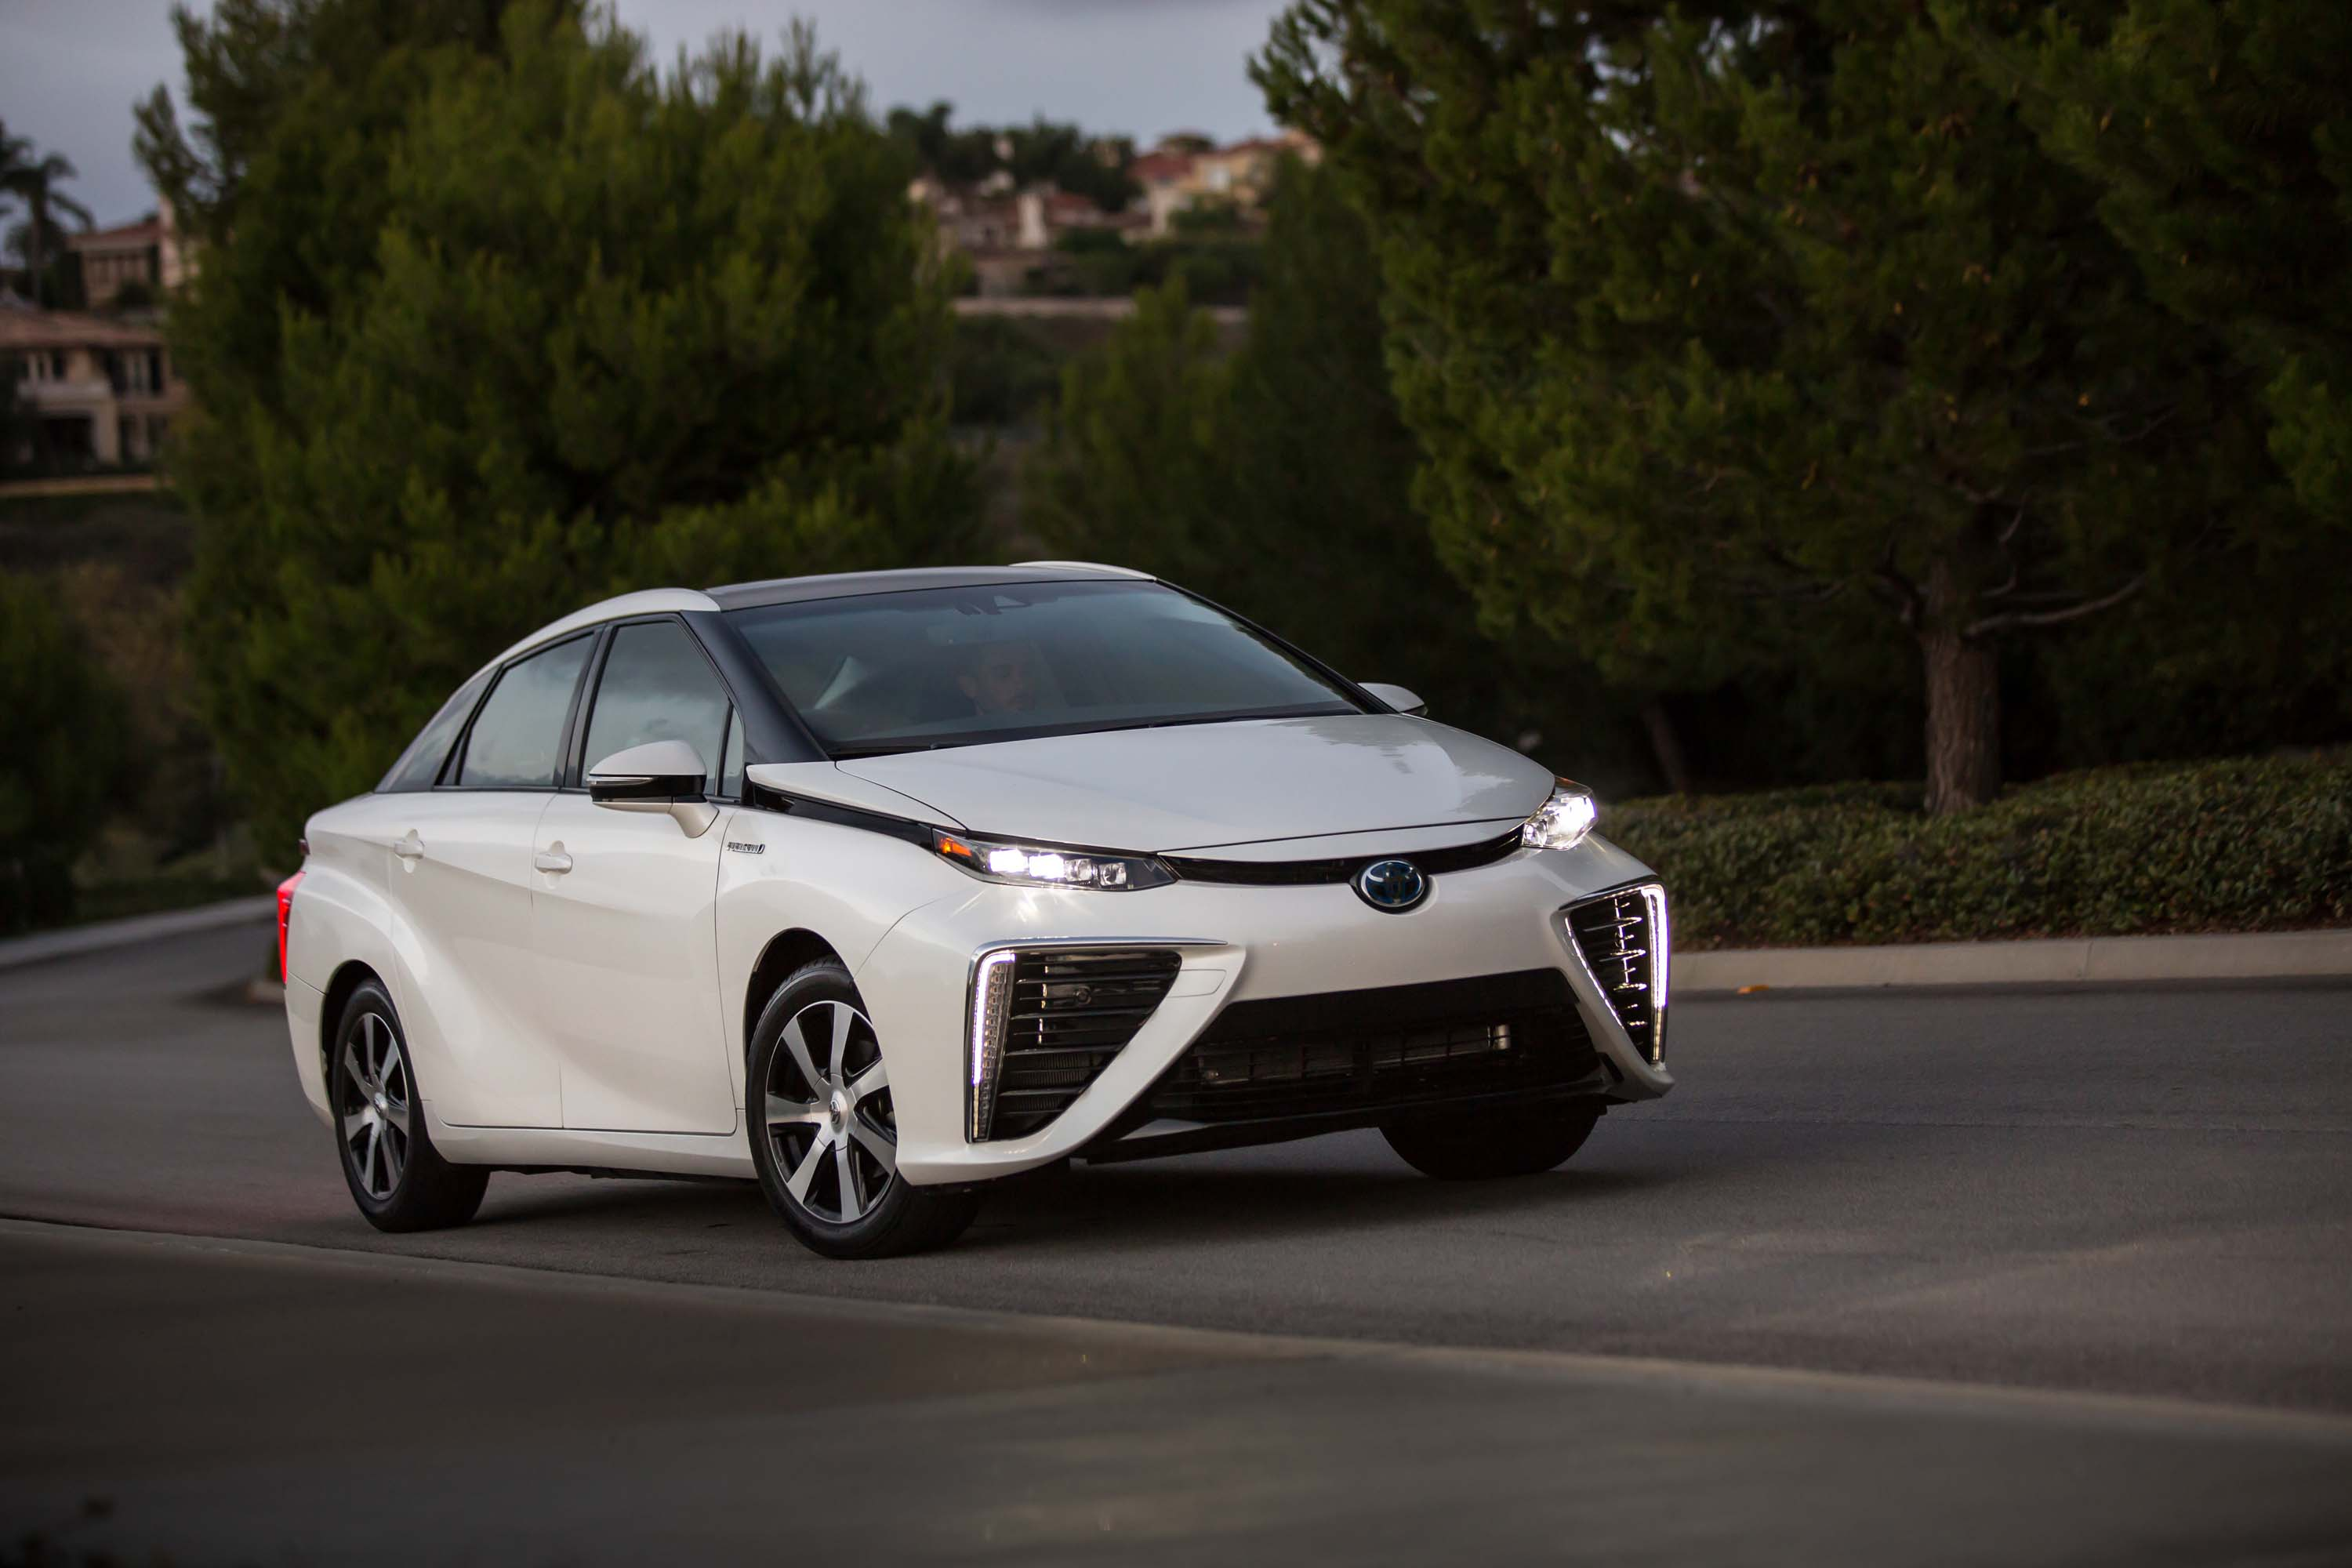 Toyota Stevens Creek >> Toyota Mirai on sale from October in California, still ugly | Between the Axles